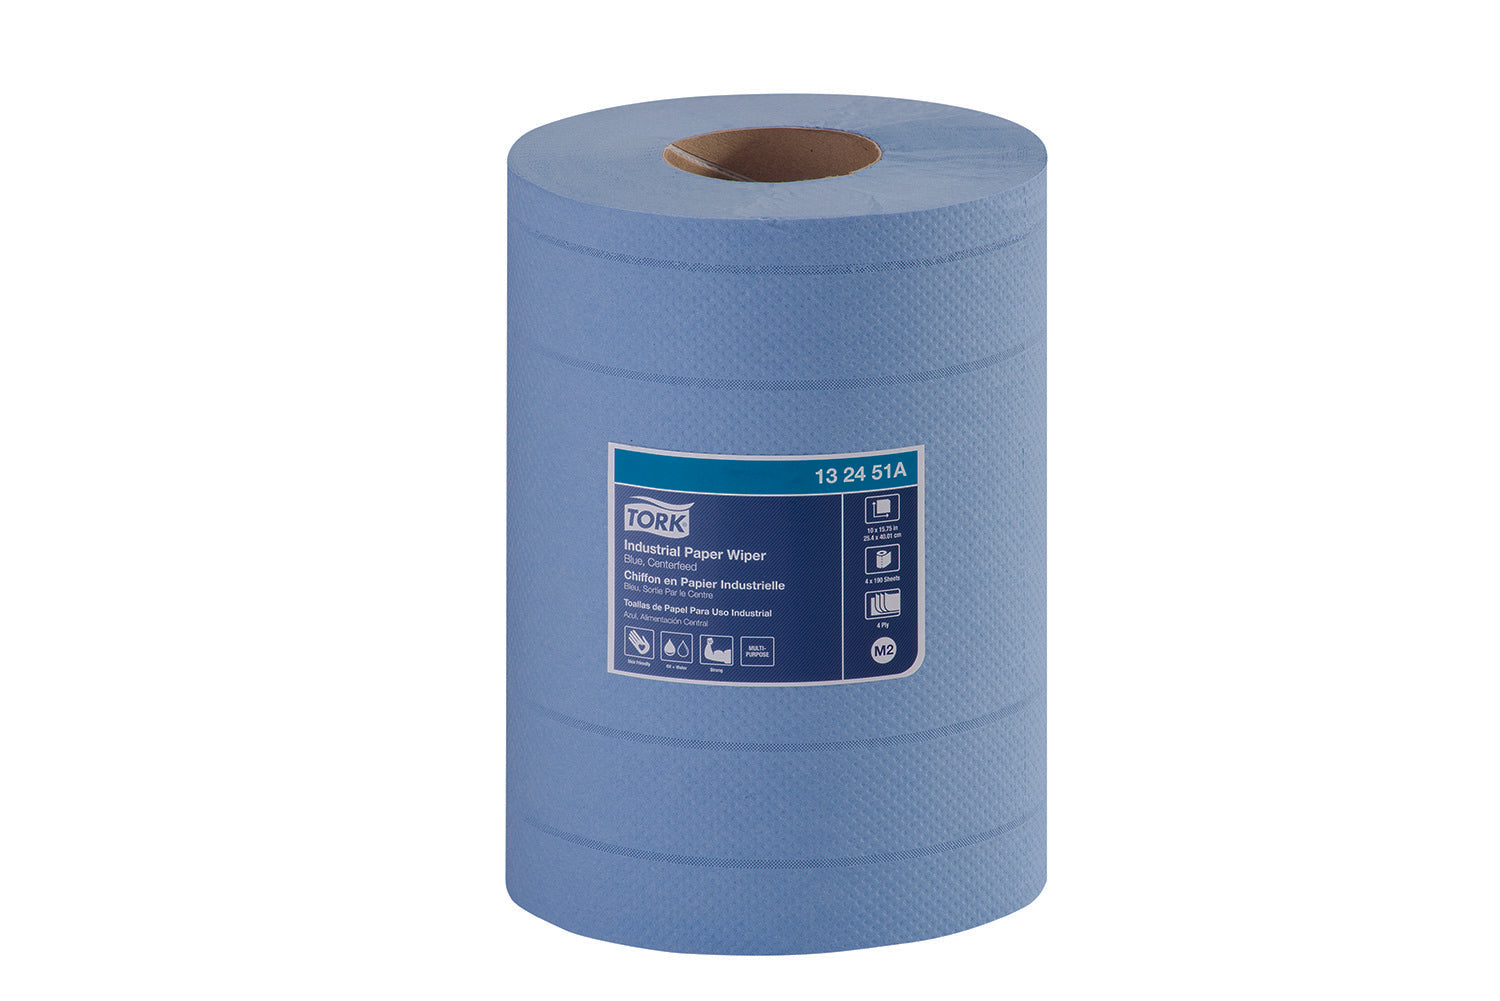 Tork Centerfeed  Industrial Paper Wiper, 4-Ply Blue - 4 Rolls x 760 Sheets